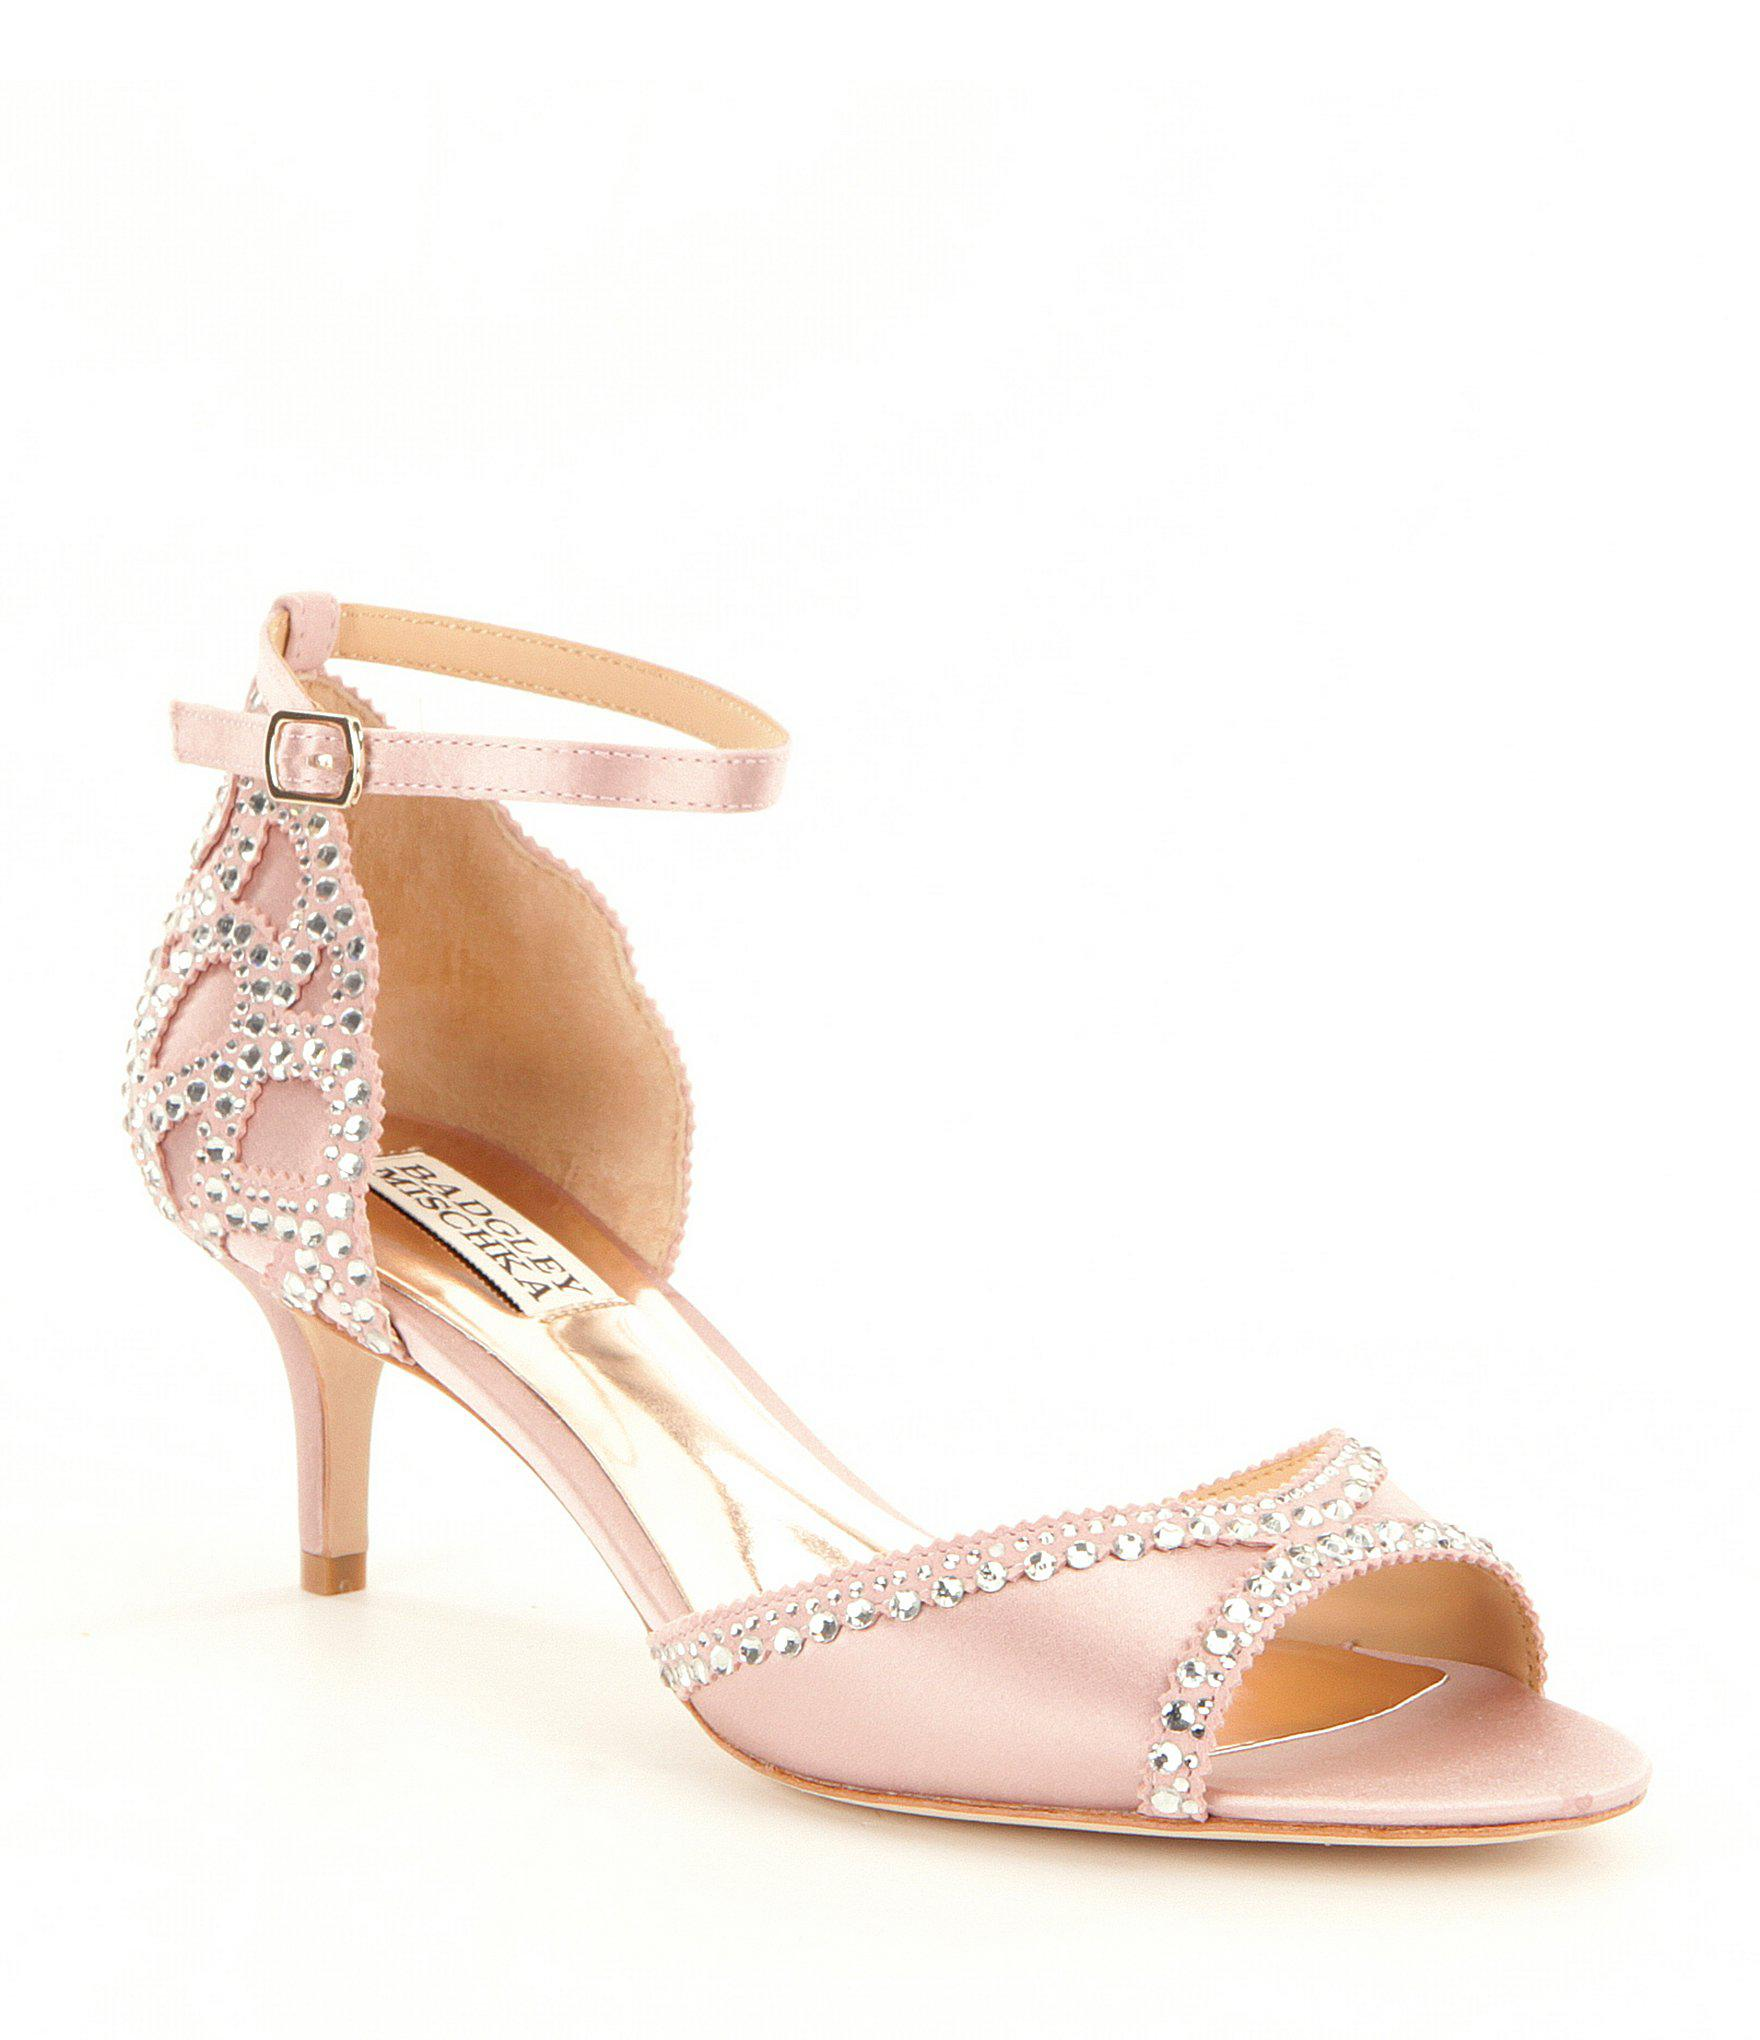 2e93aafd01a Badgley Mischka Gillian Jeweled Satin   Suede Dress Sandals in Pink ...